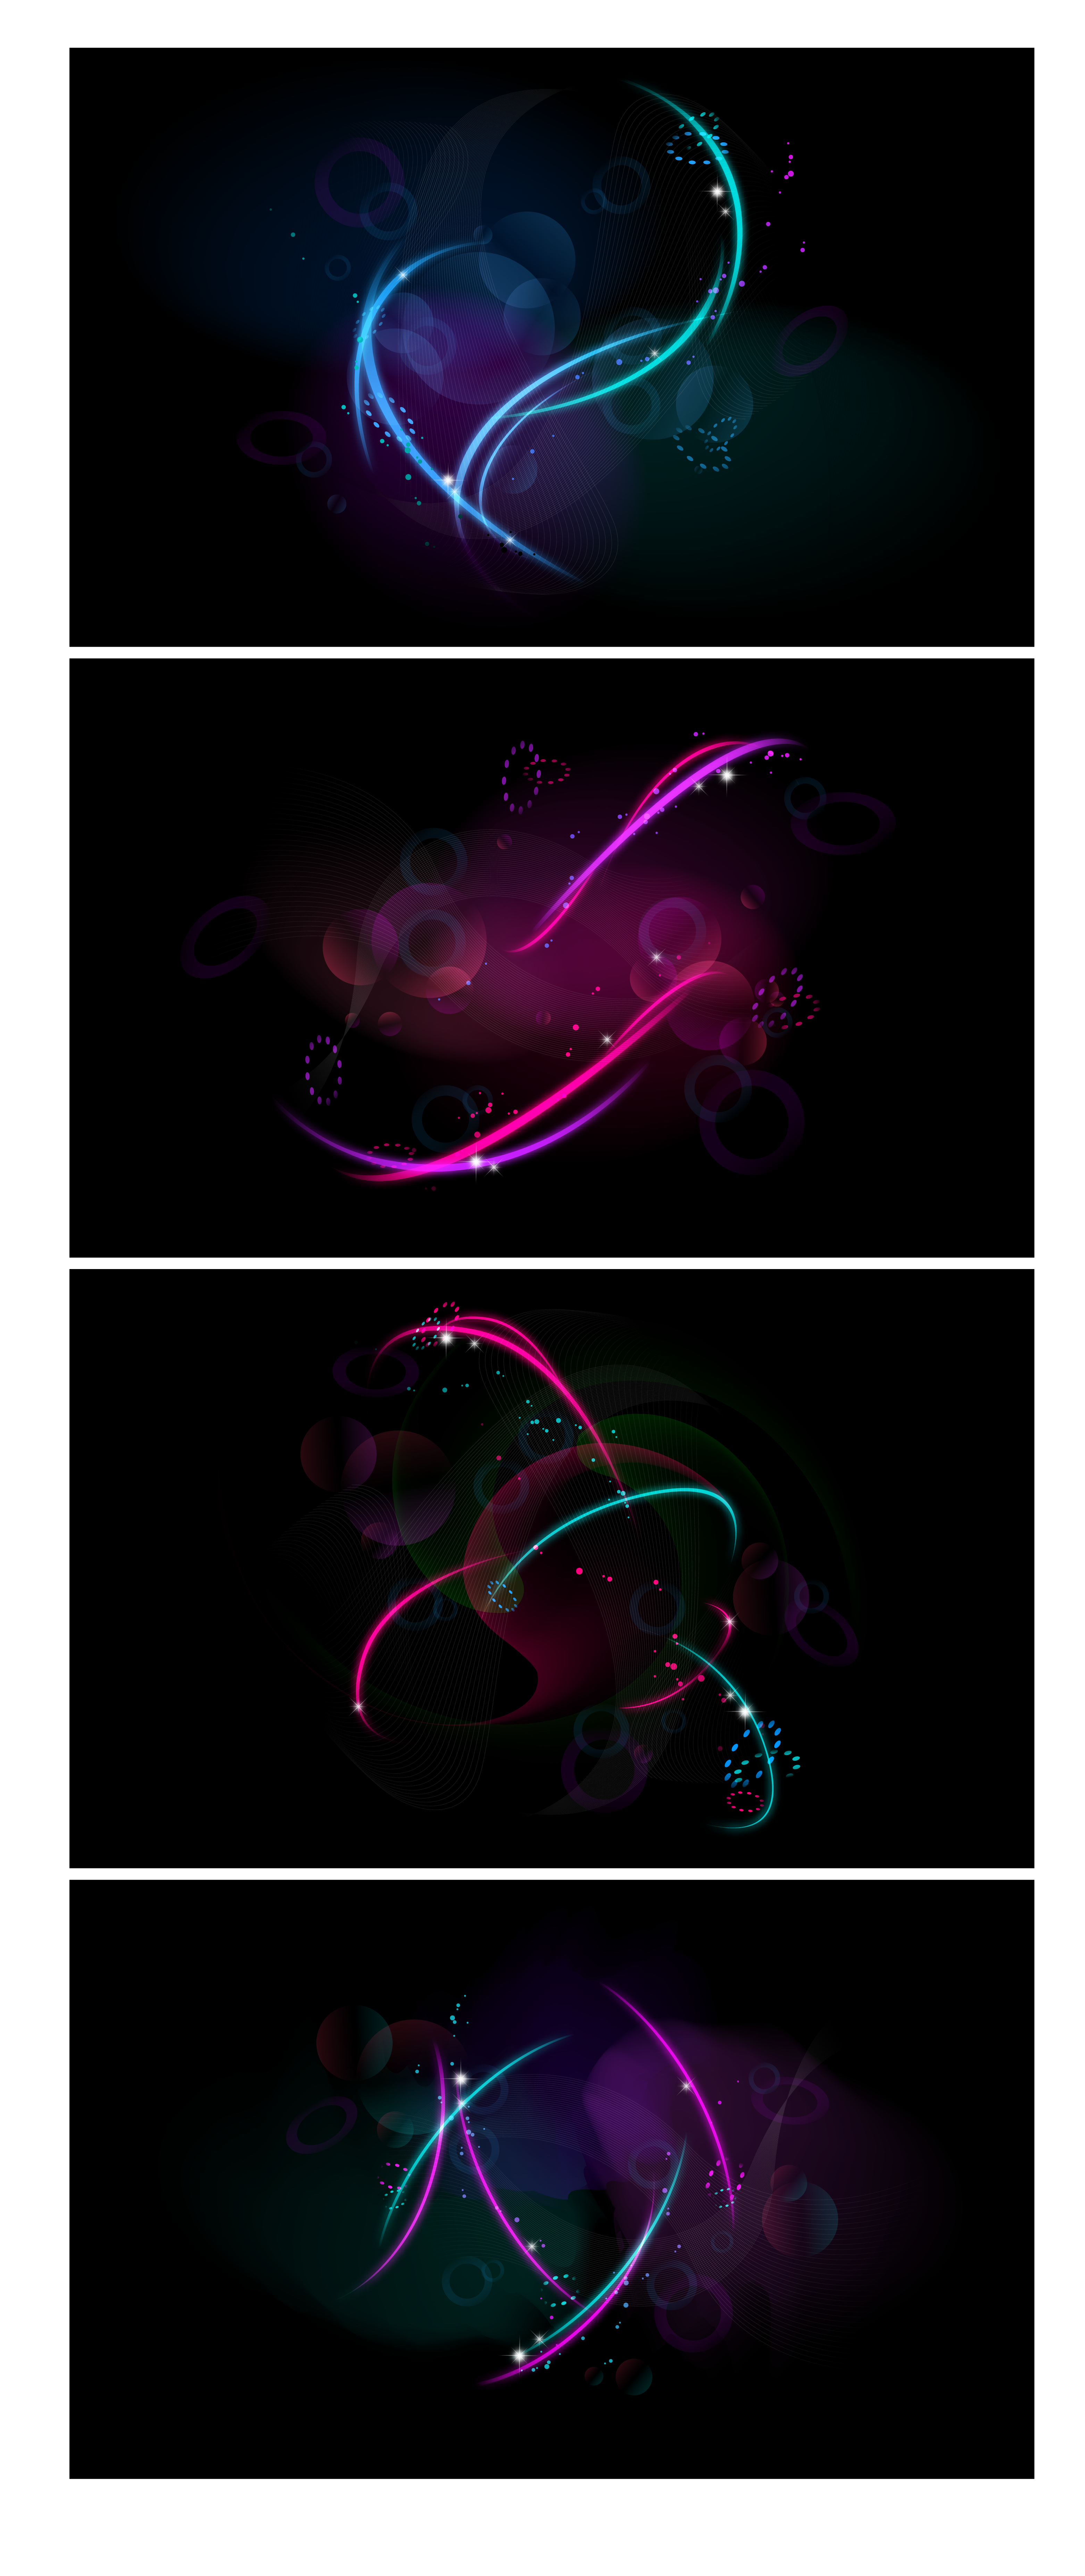 Neon background png. Advertising download display stand